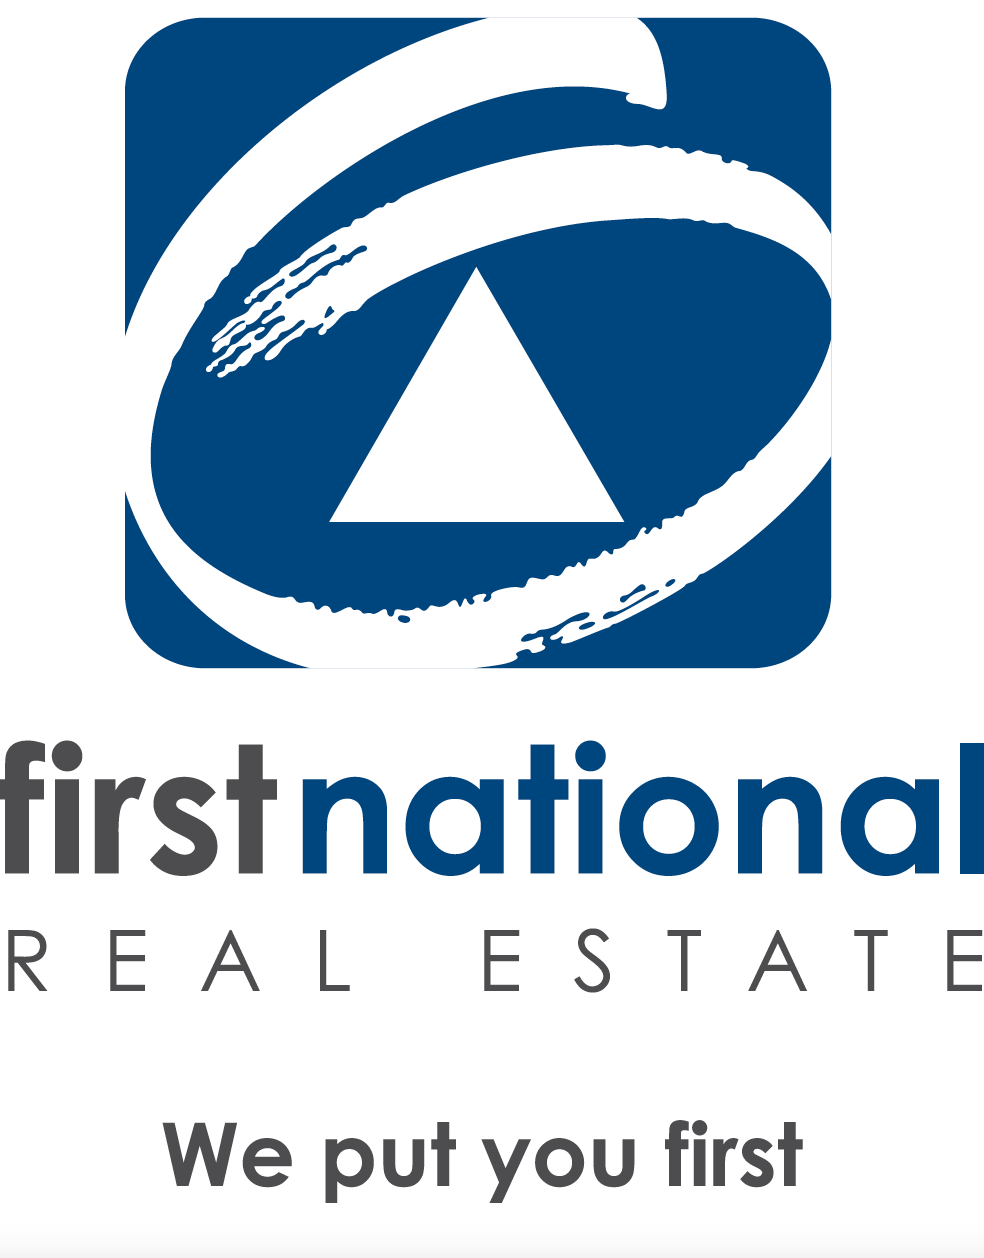 First National Real Estate Team